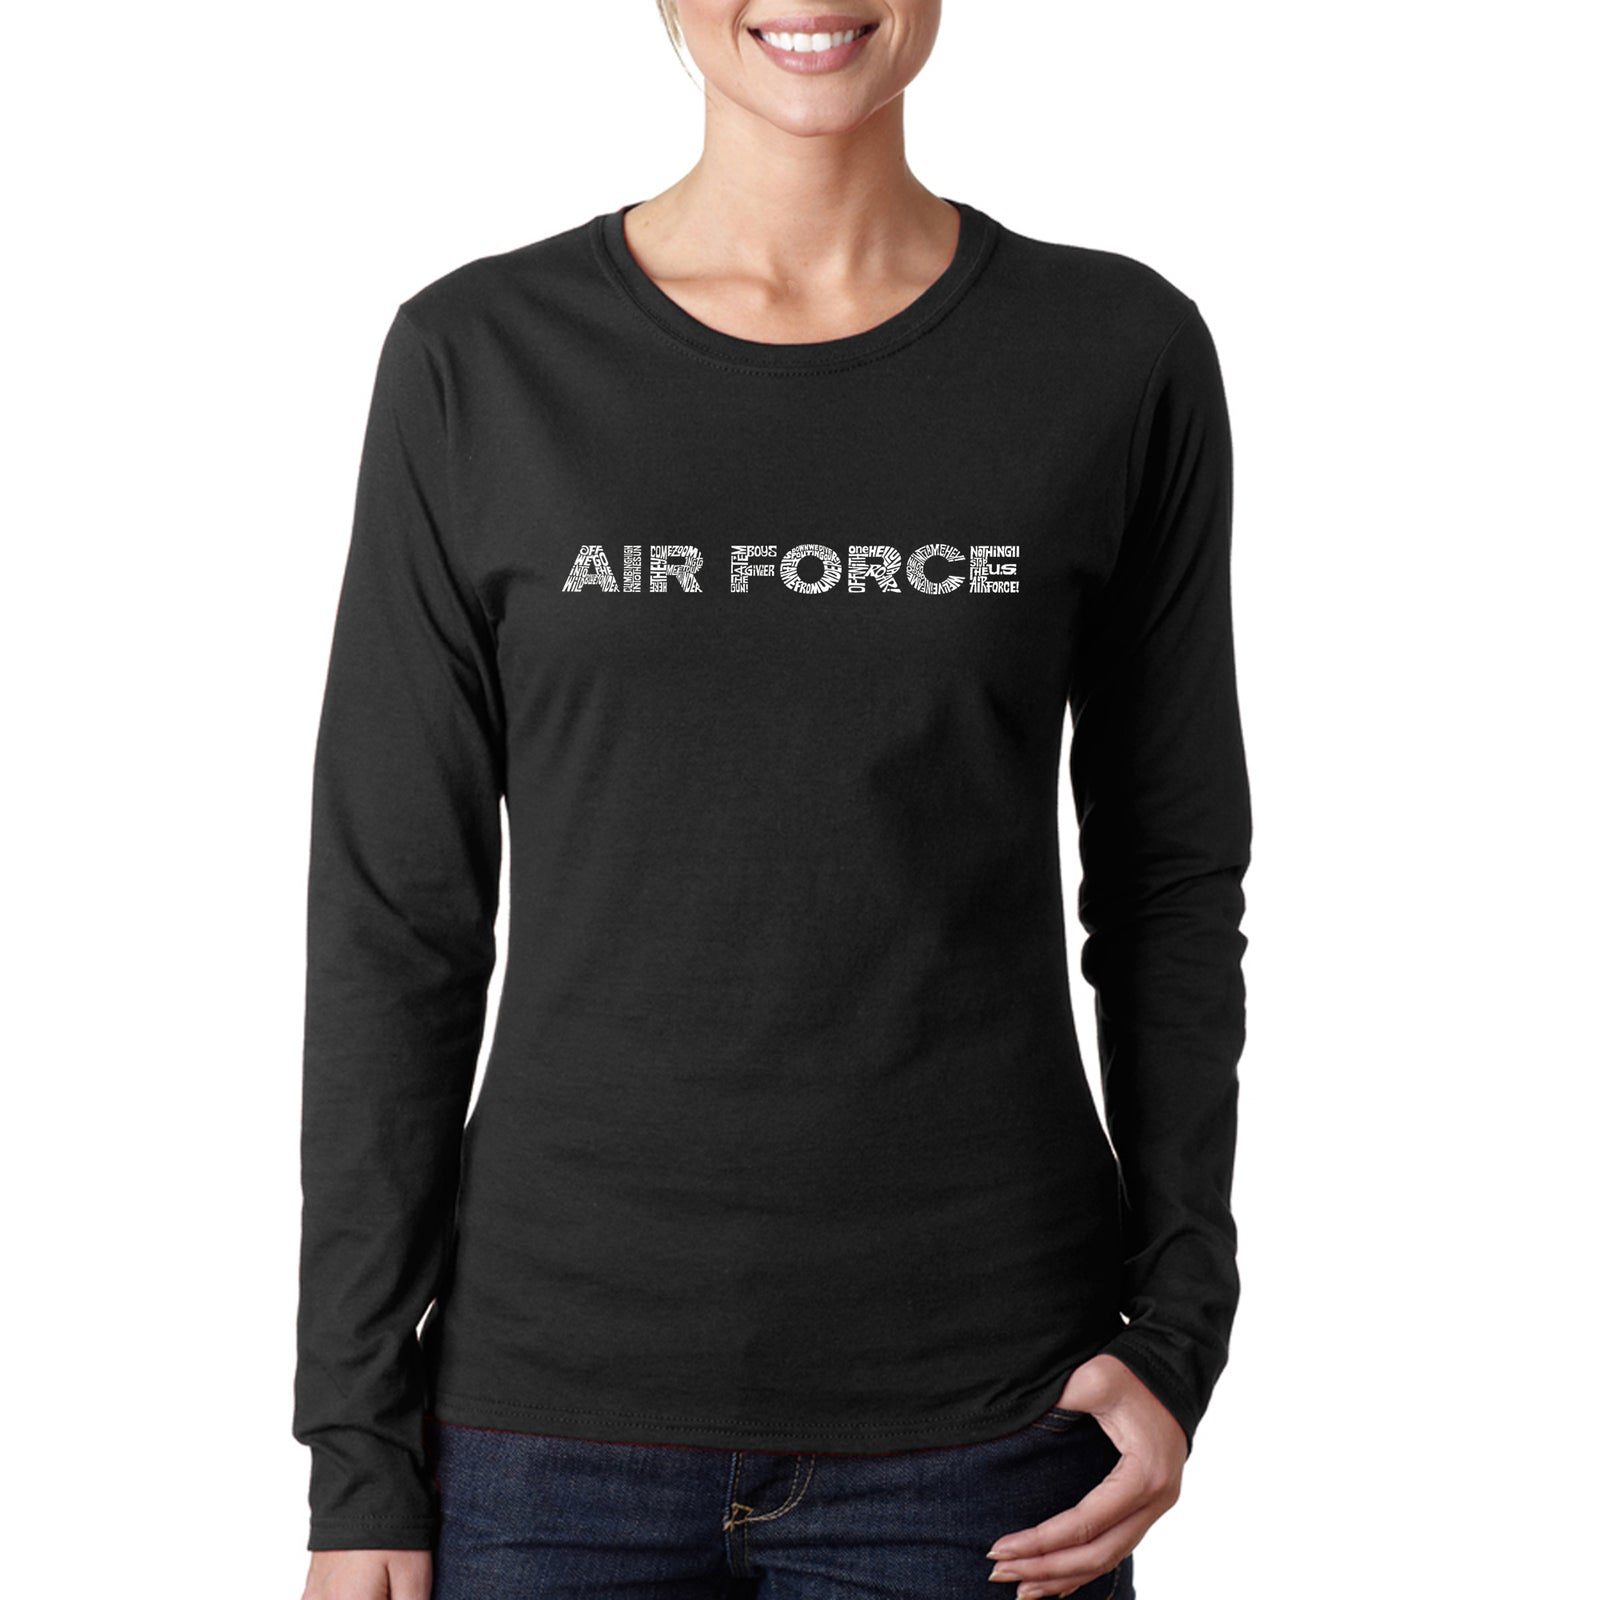 Women's Long Sleeve T-Shirt - Lyrics To The Air Force Song